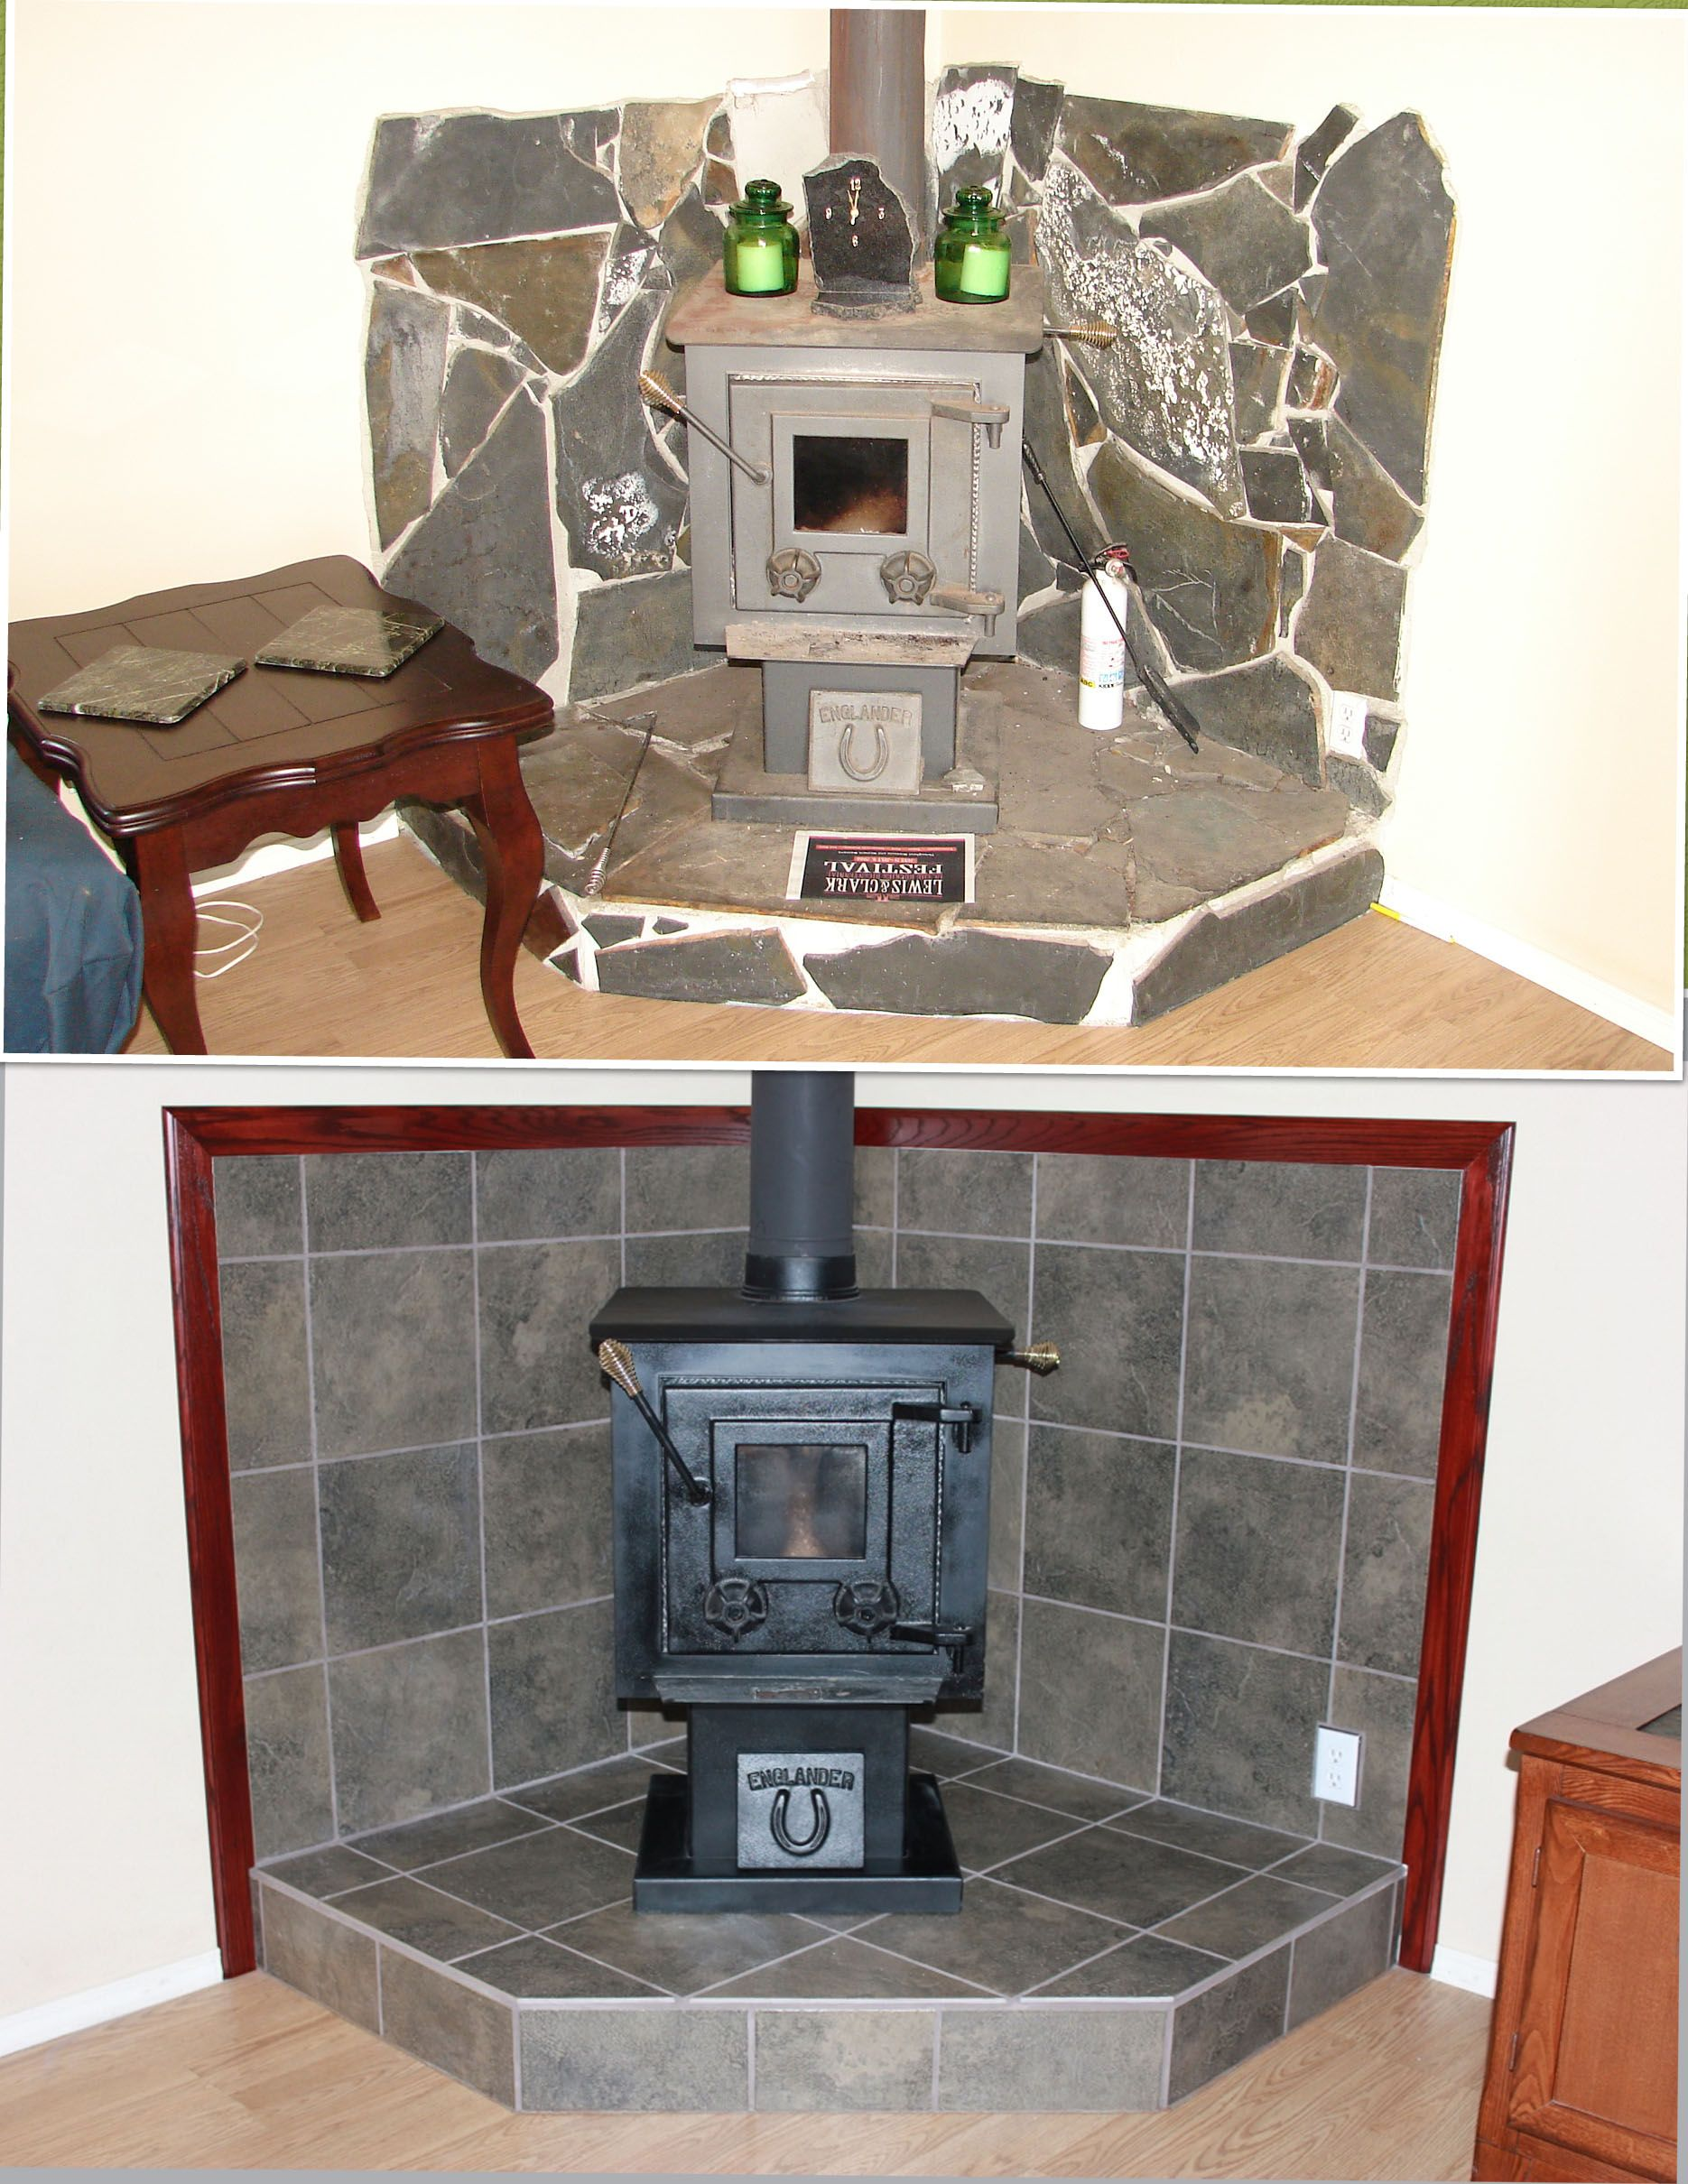 Free Standing Wood Stove Fireplace Surround Project We Tore Out The Slate Chunks And Mortar Wood Stove Fireplace Wood Stove Surround Free Standing Wood Stove